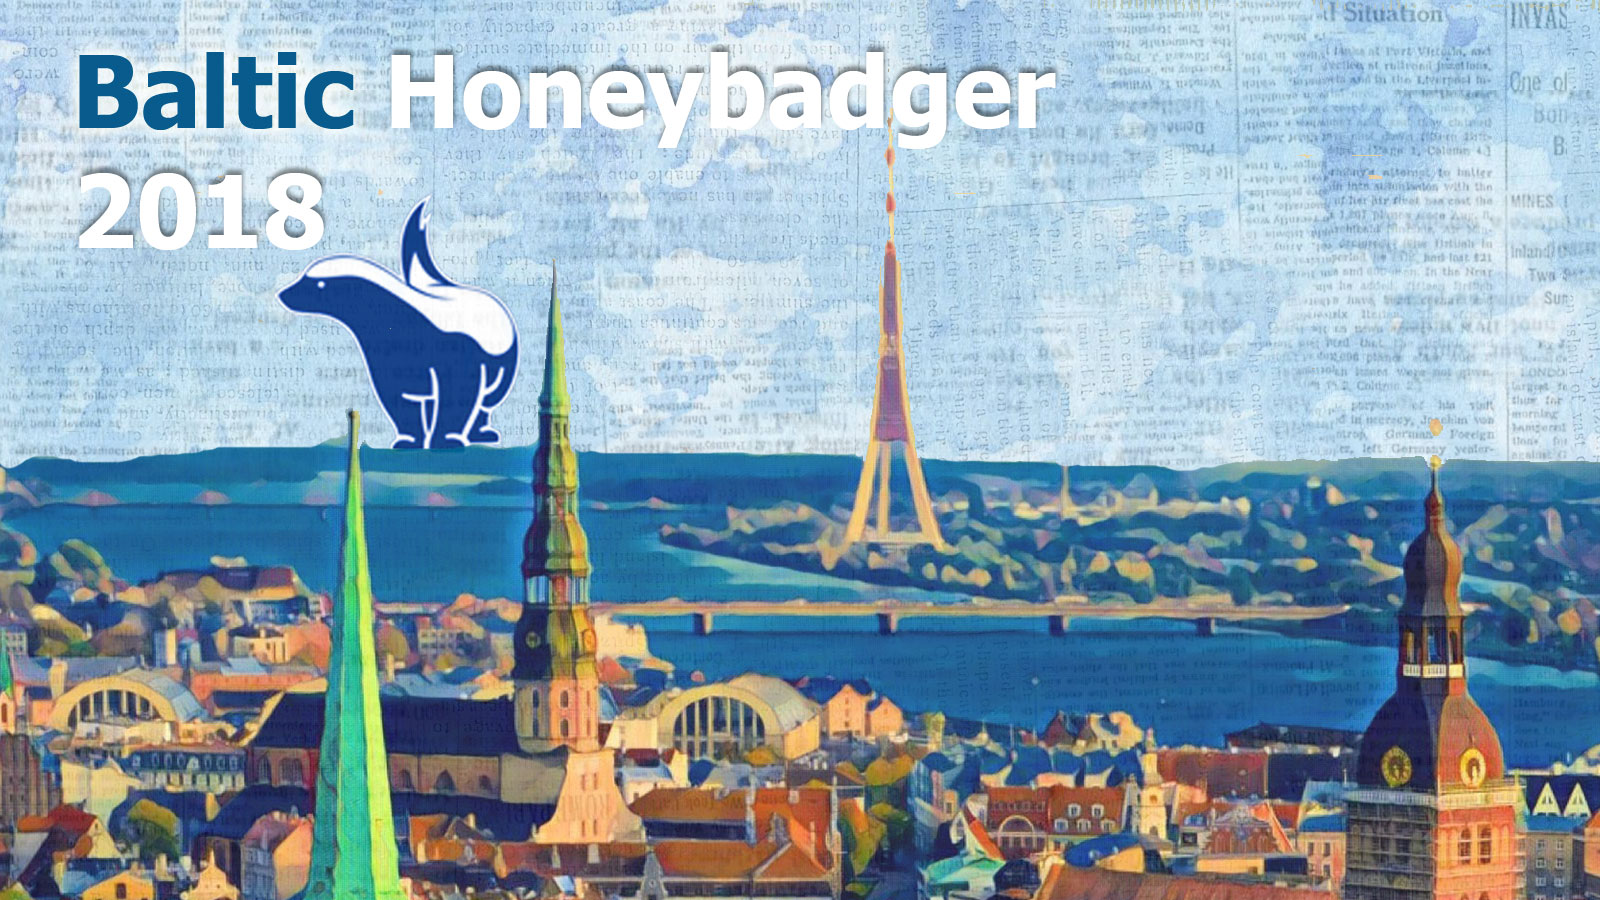 Baltic Honeybadger 2018_2